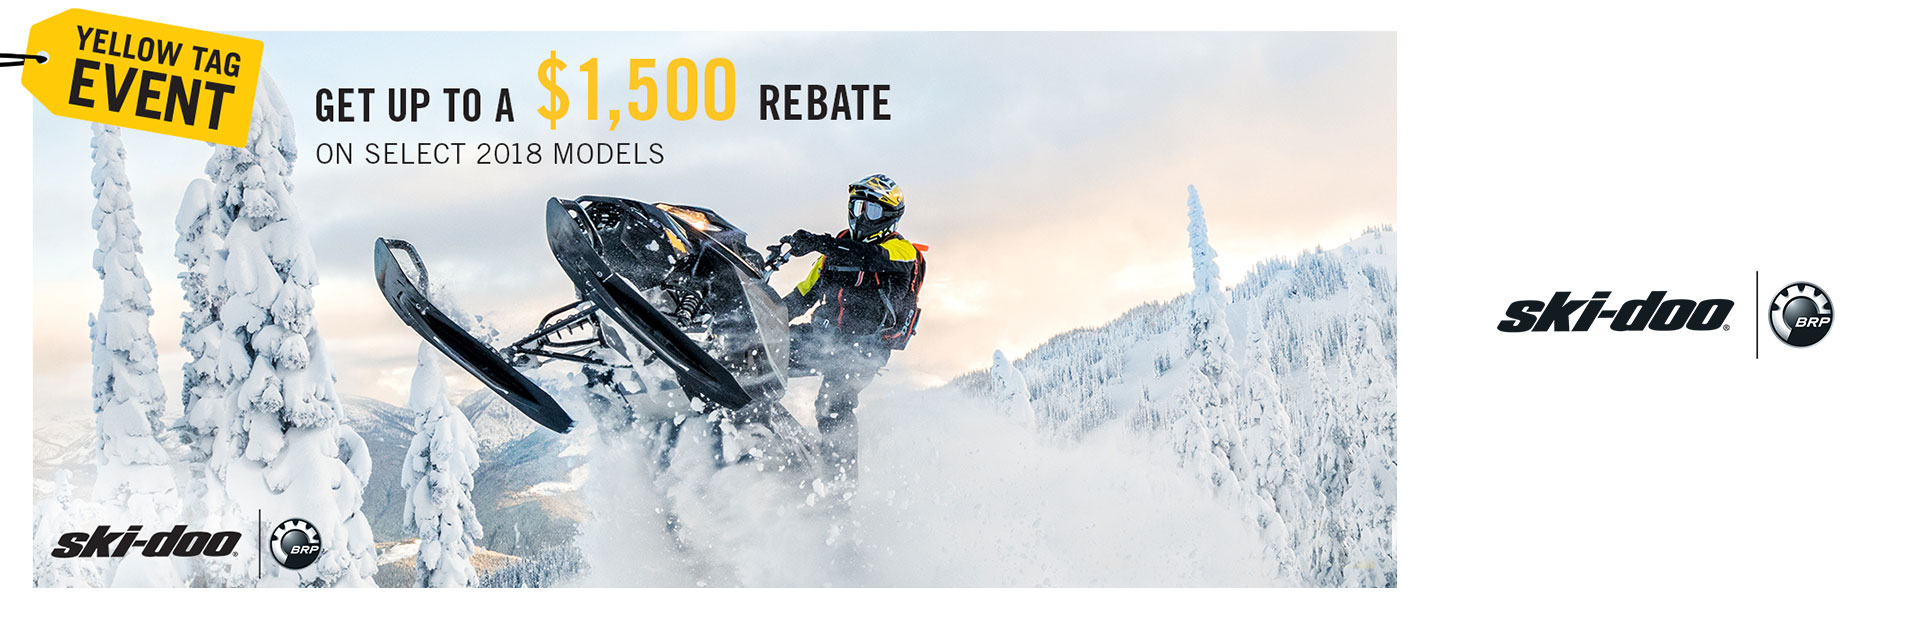 Ski-Doo: Yellow Tag Sales Event